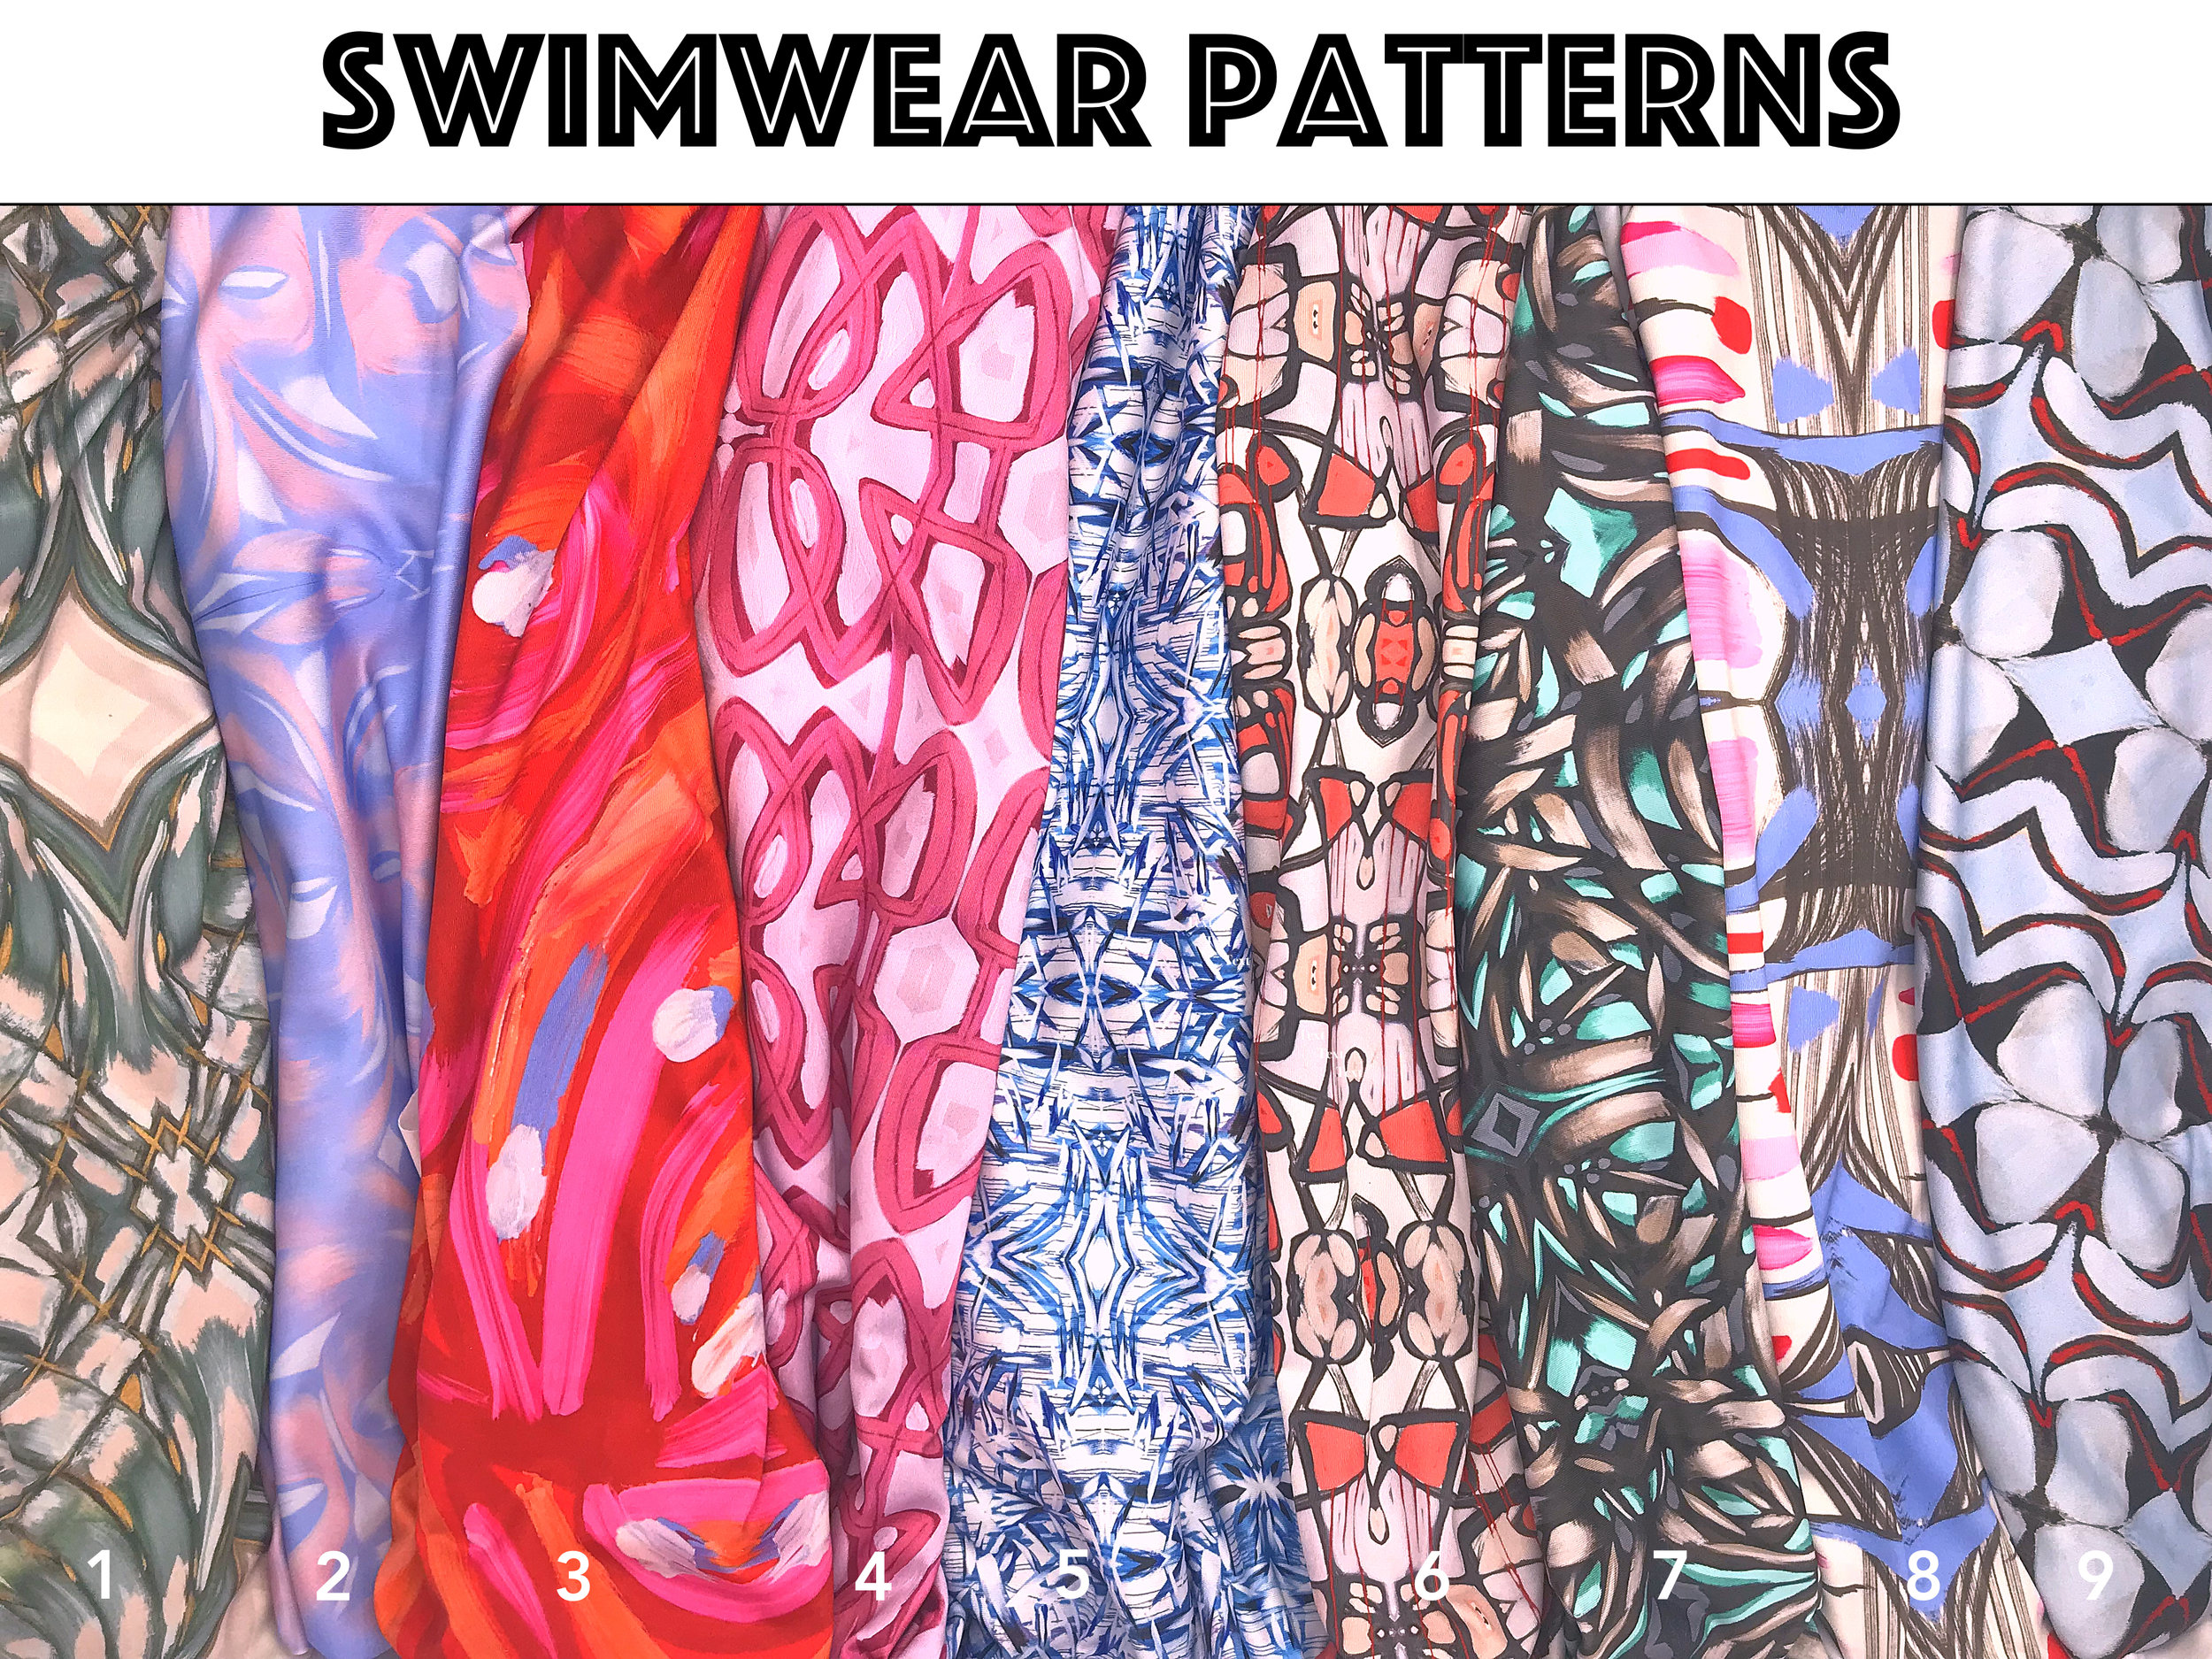 Mix and match - pick your patterns and customize your suit! From left to right:  1. Beaumont Lane 2. Venusian 3. Chime 4. Bubbles 5. Crashing Waves 6. Shatter 7. Lagos 8. Morgan 9. Arrow